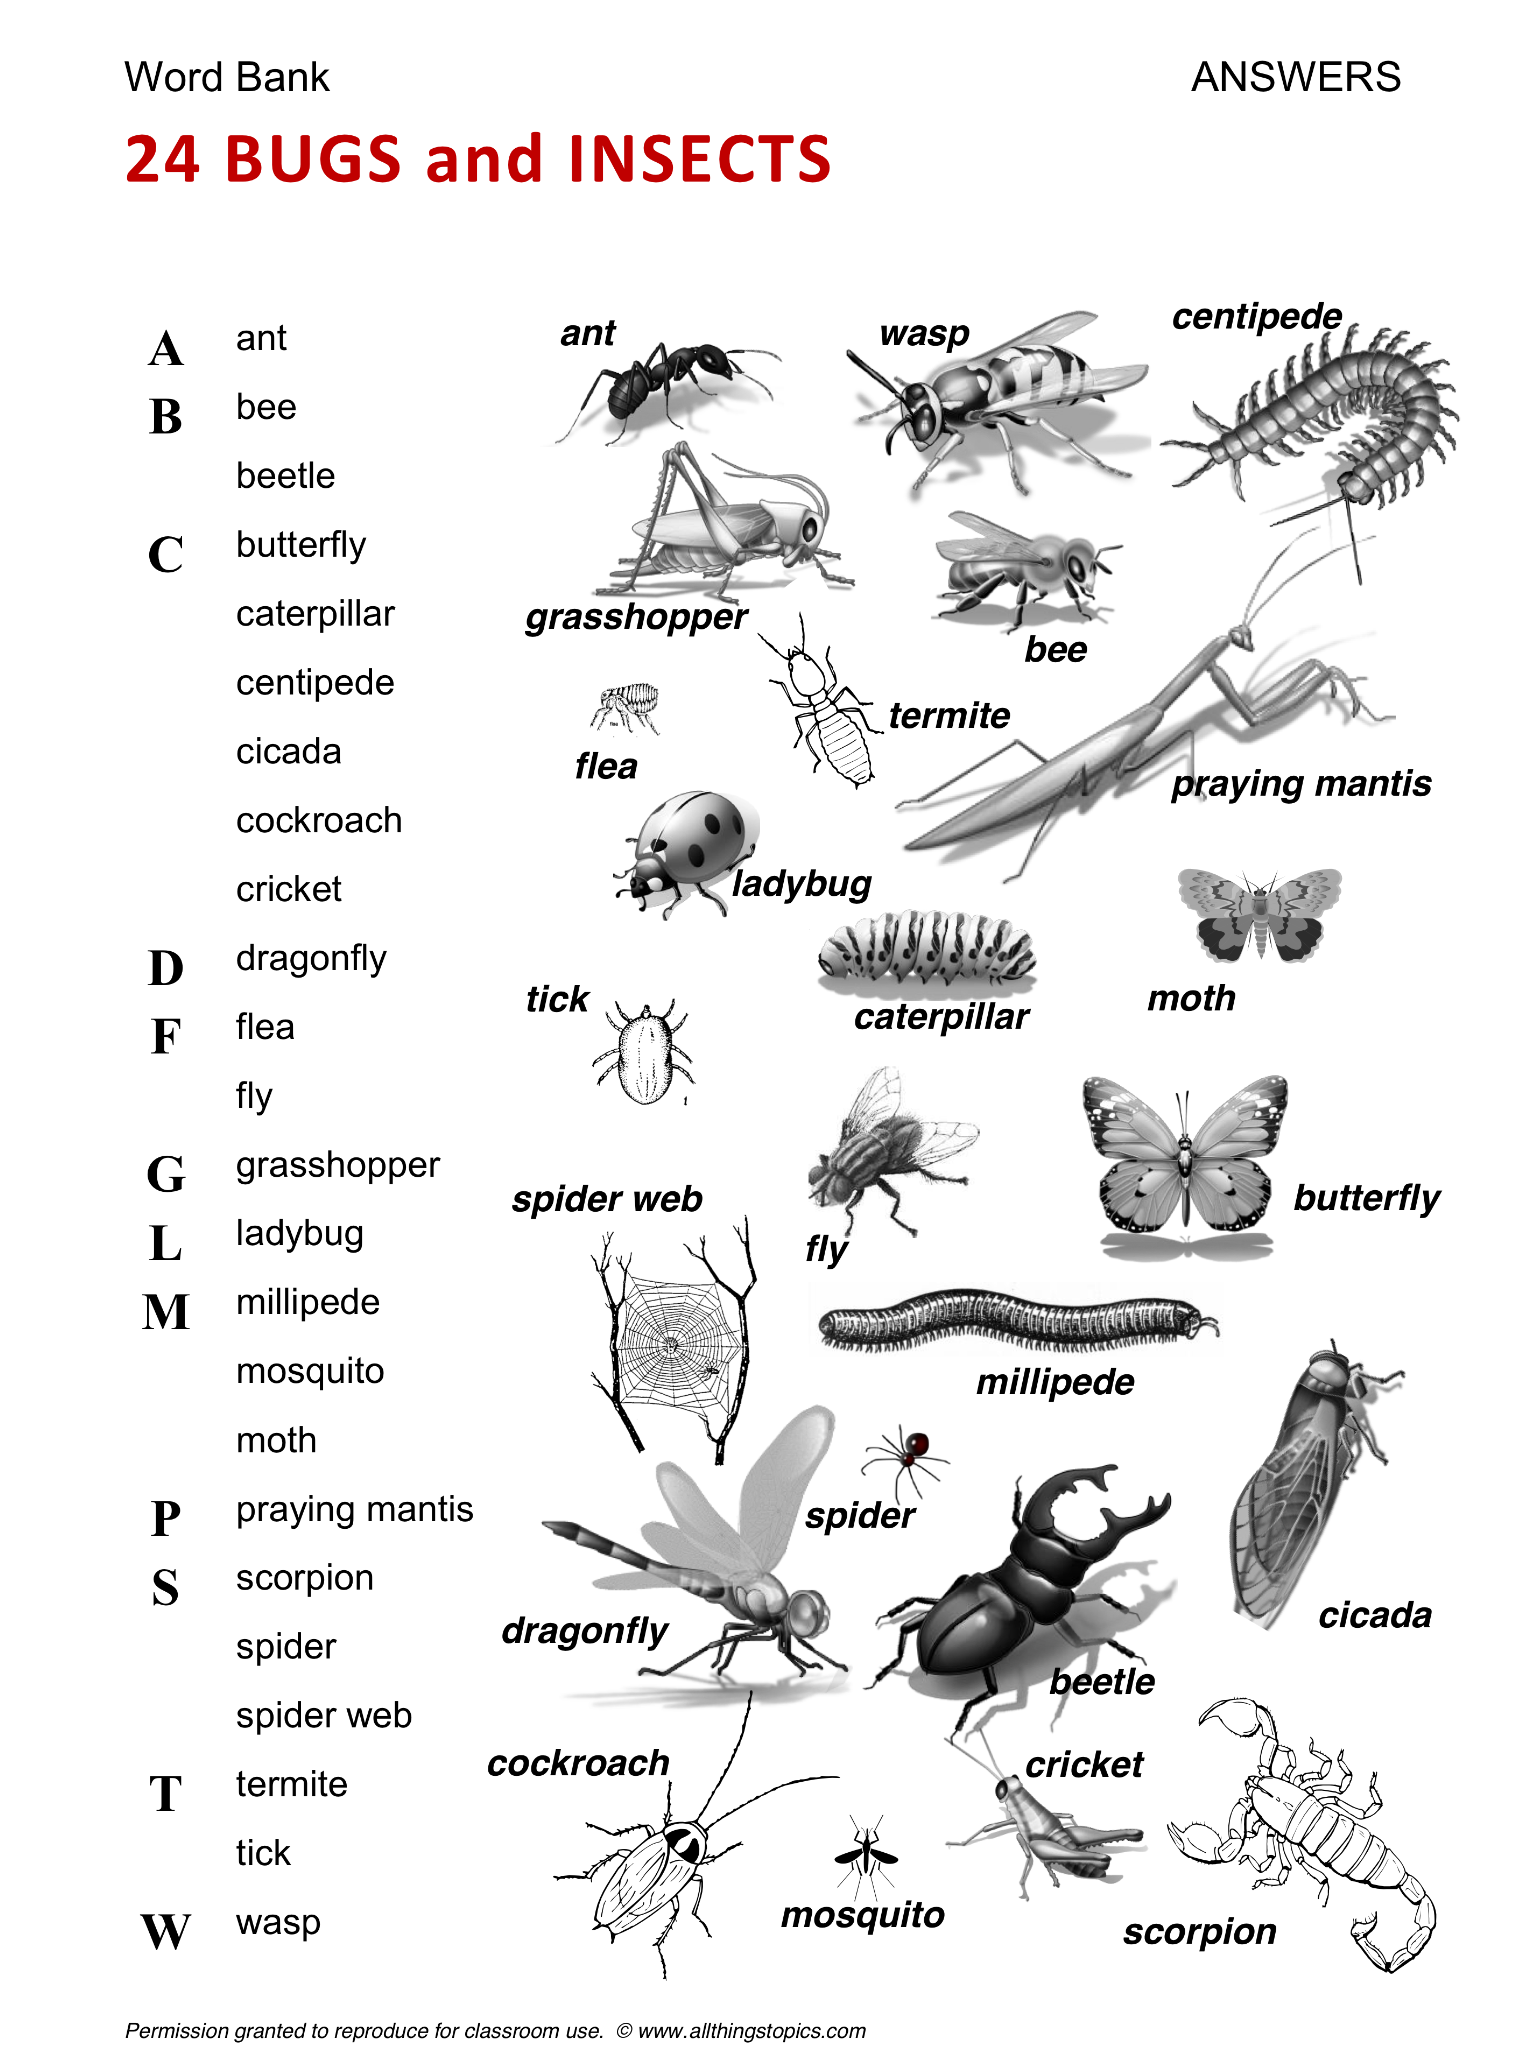 Bugs and Insects, English, Learning English, Vocabulary